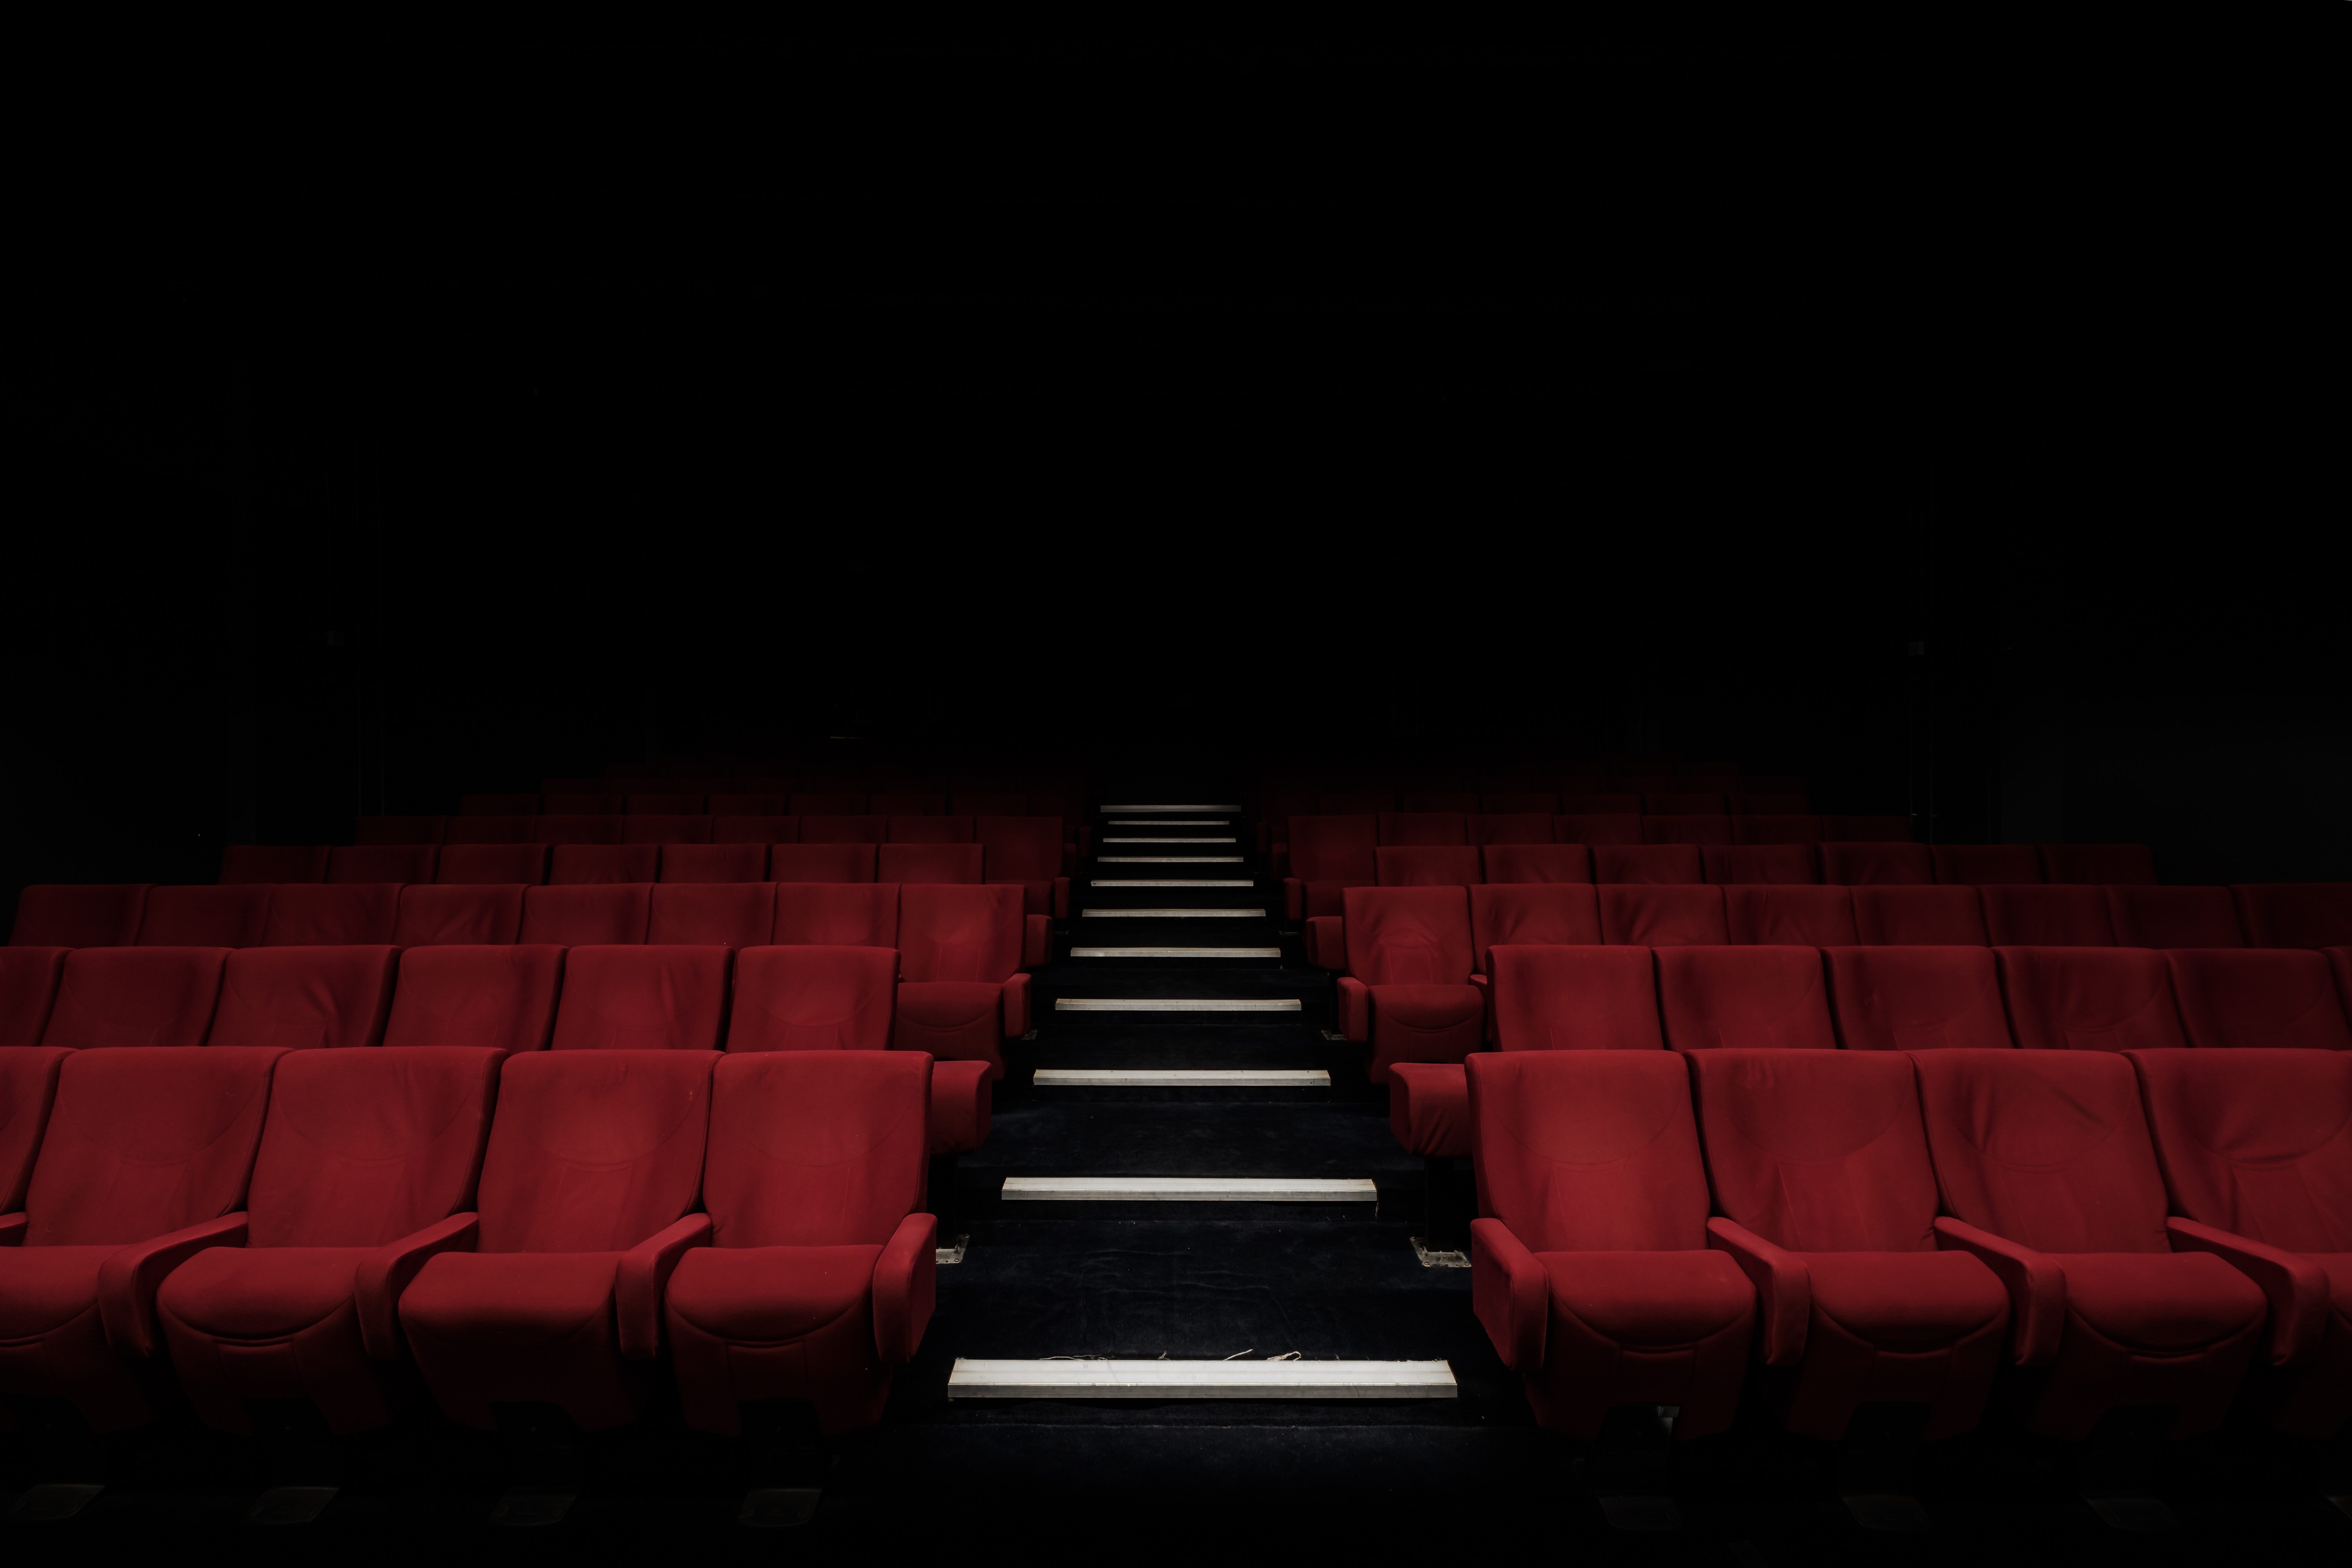 Darkened Movie Theater